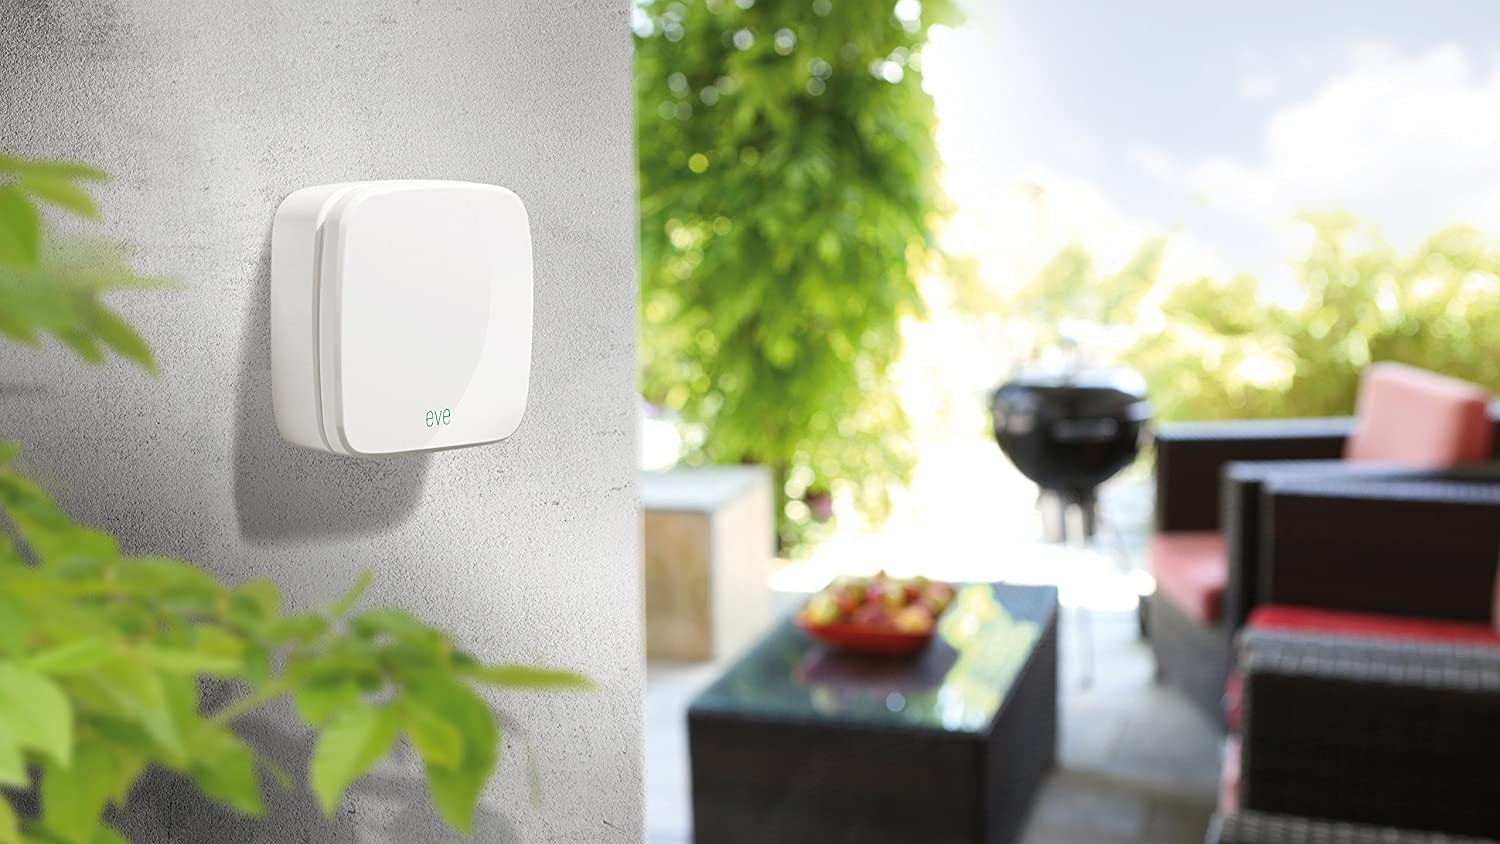 Elgato Eve Weather White Wireless Outdoor Sensor with Apple HomeKit Technology